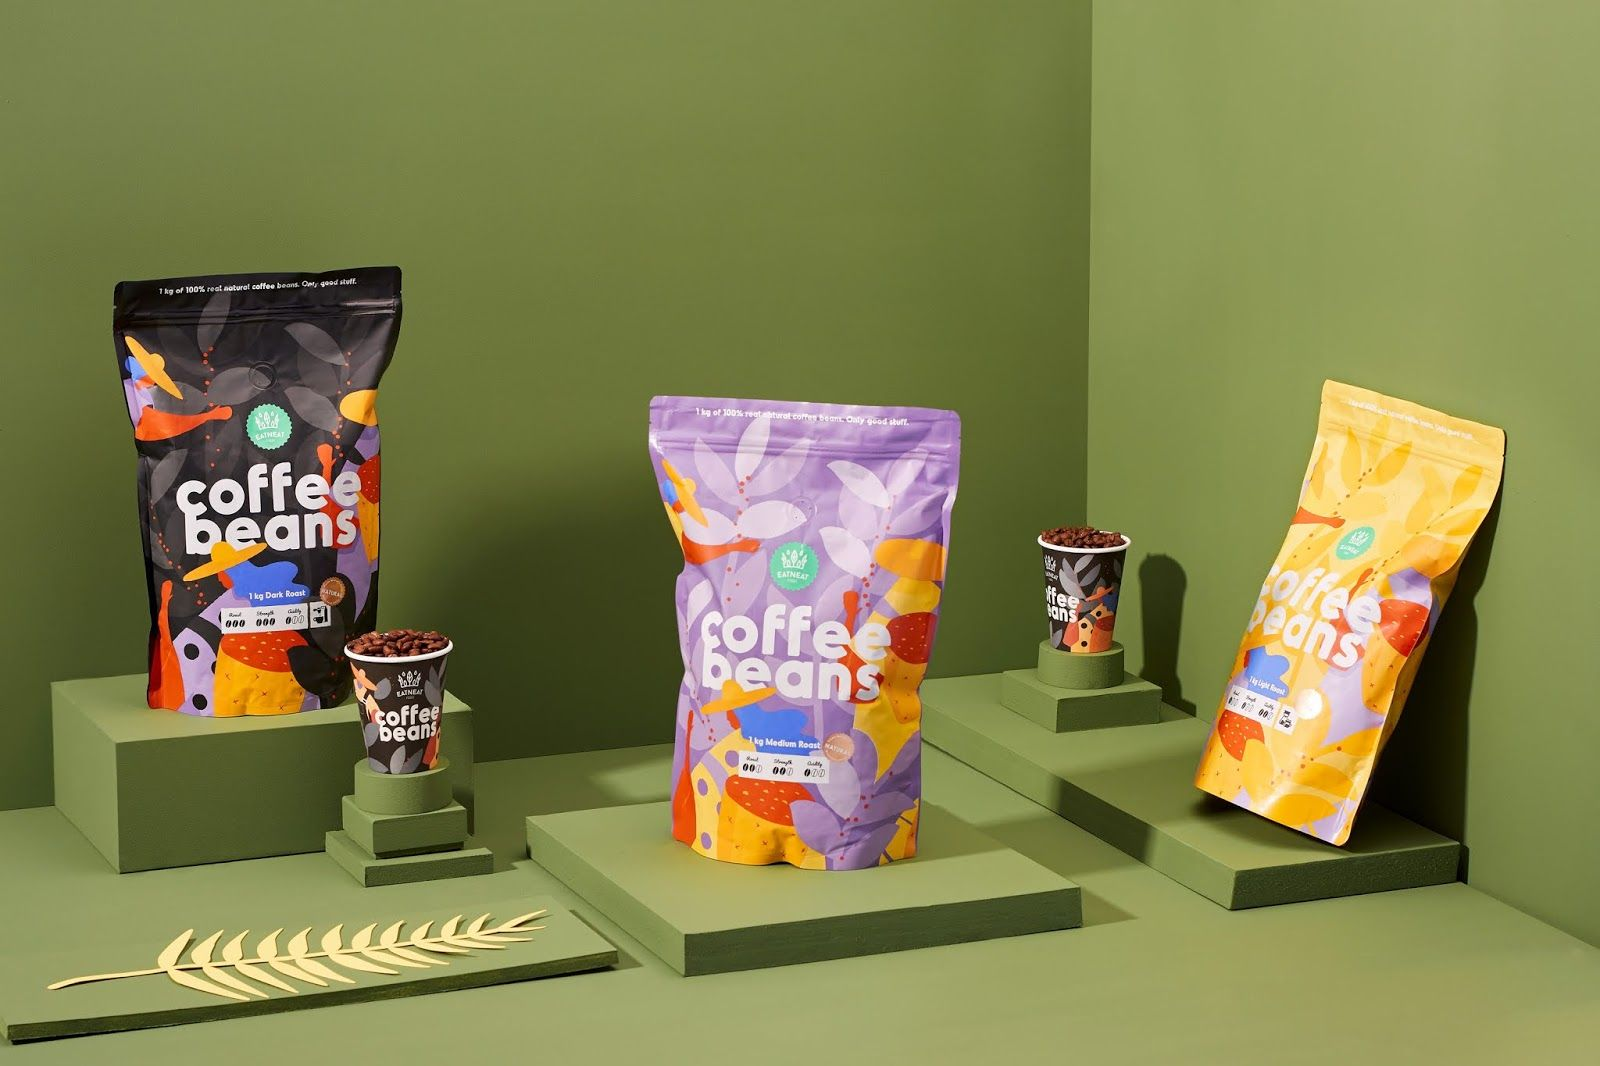 Coffee Beans | Packaging design inspiration, Coffee beans ...